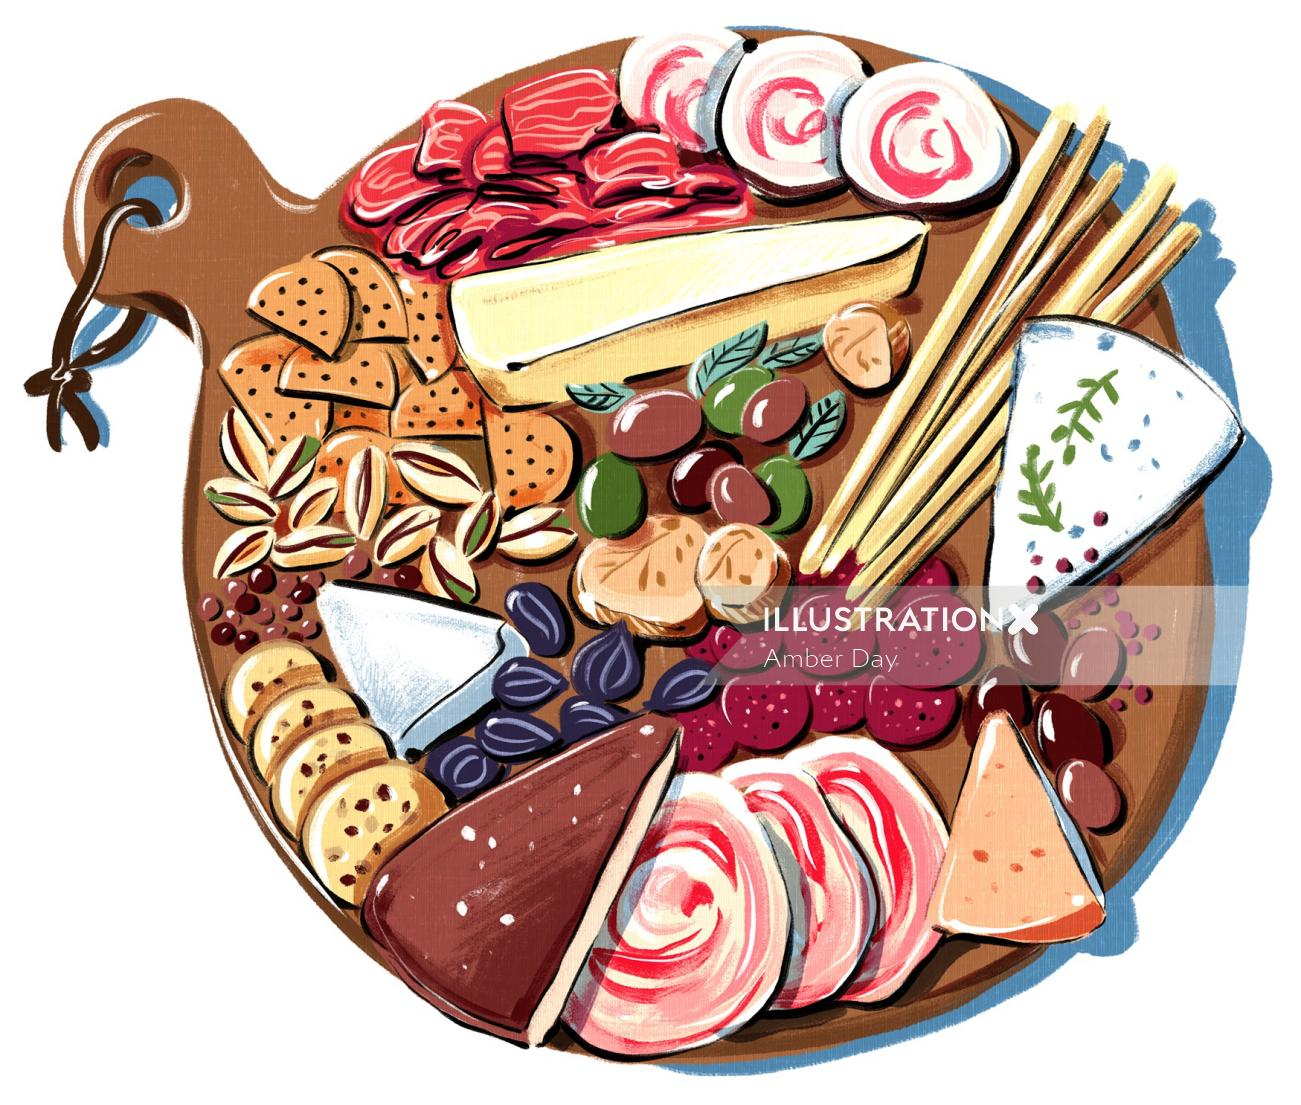 charcuterie, cheese, meat, ham, olives, crackers, tapas, culinary, snack, bologna, fig, bright, insp